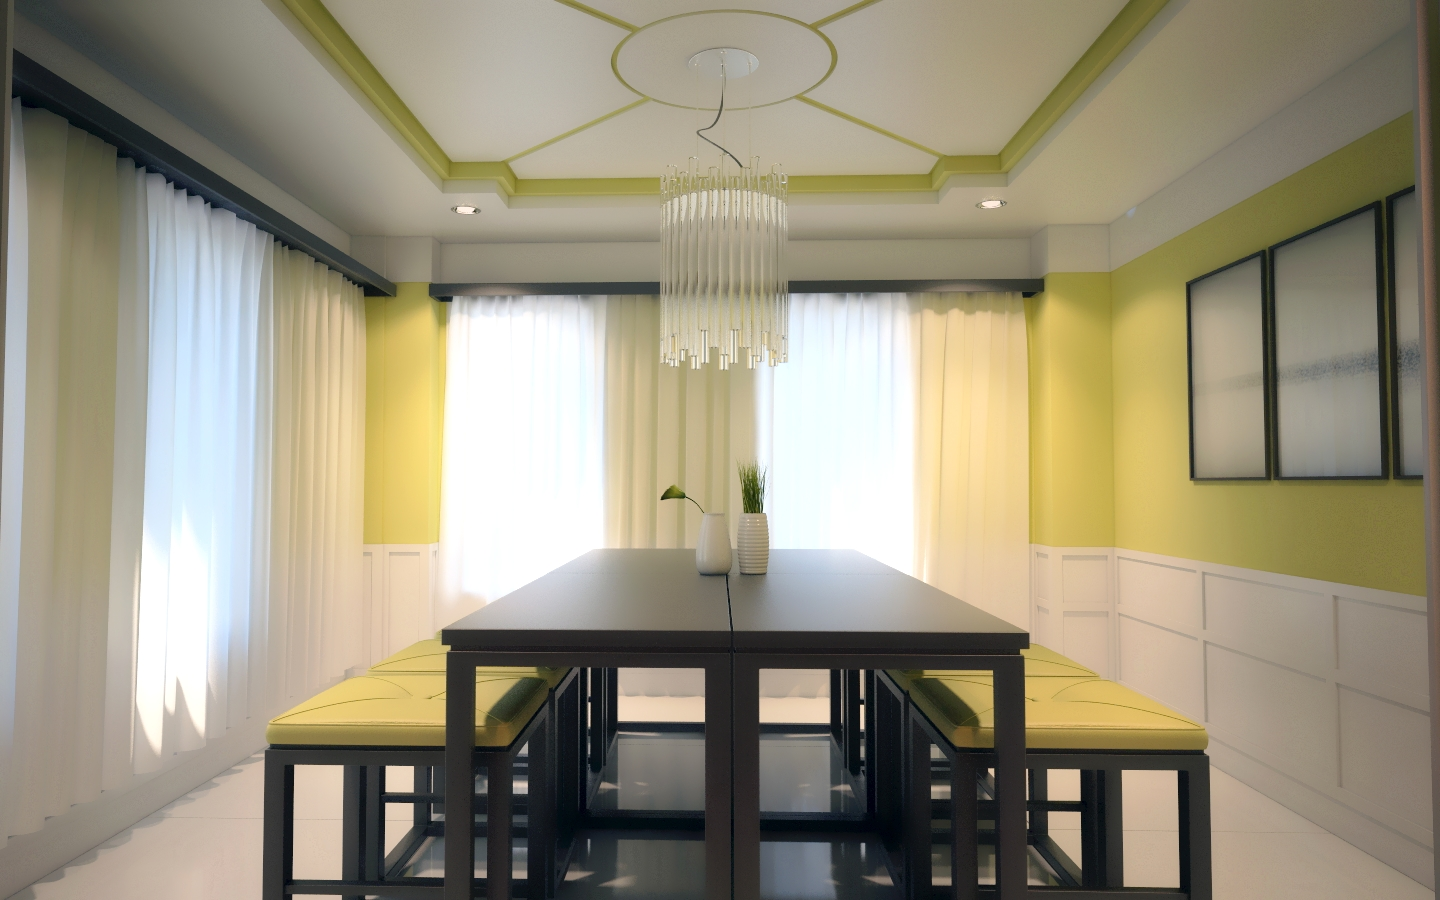 J arch designs updated penthouse interior for Interior arch design ideas